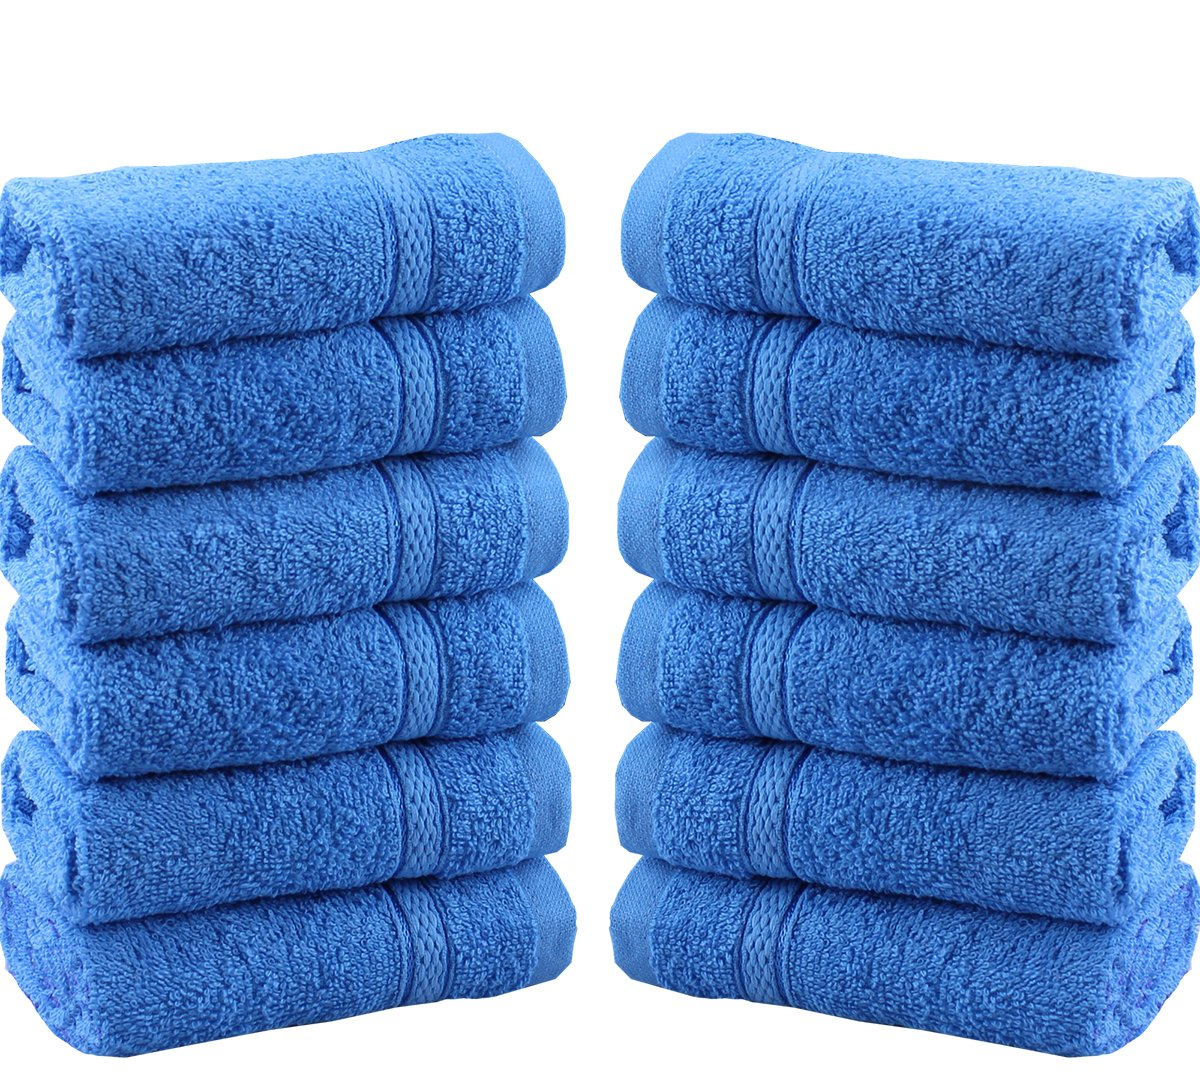 Casabella Luxury Supersoft Pack Of 12 100% Cotton Face Cloth Towels Flannels Wash Cloth 550 Gsm_Black_12 Pieces Set